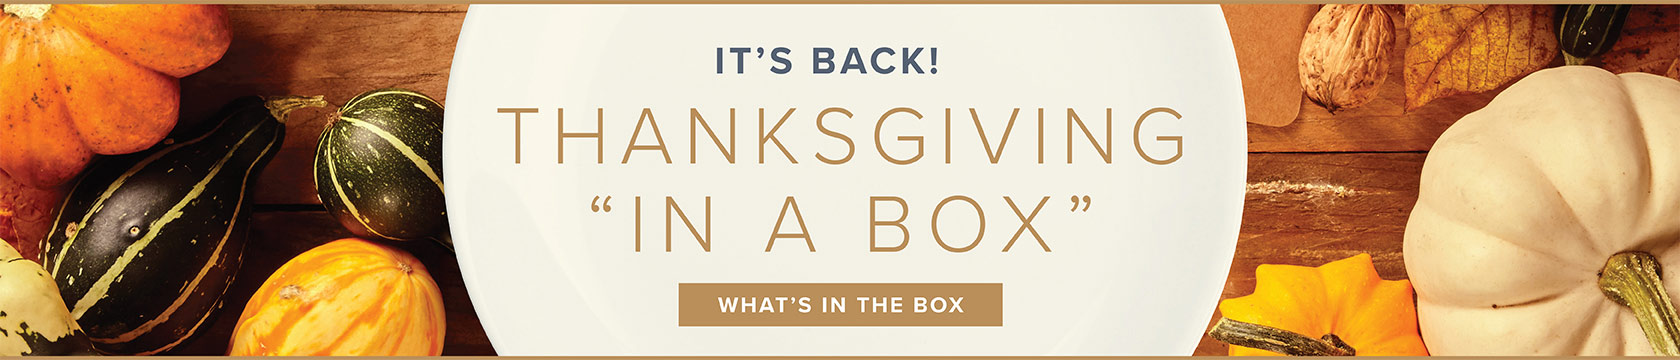 It's Back! Thanksgiving in a Box